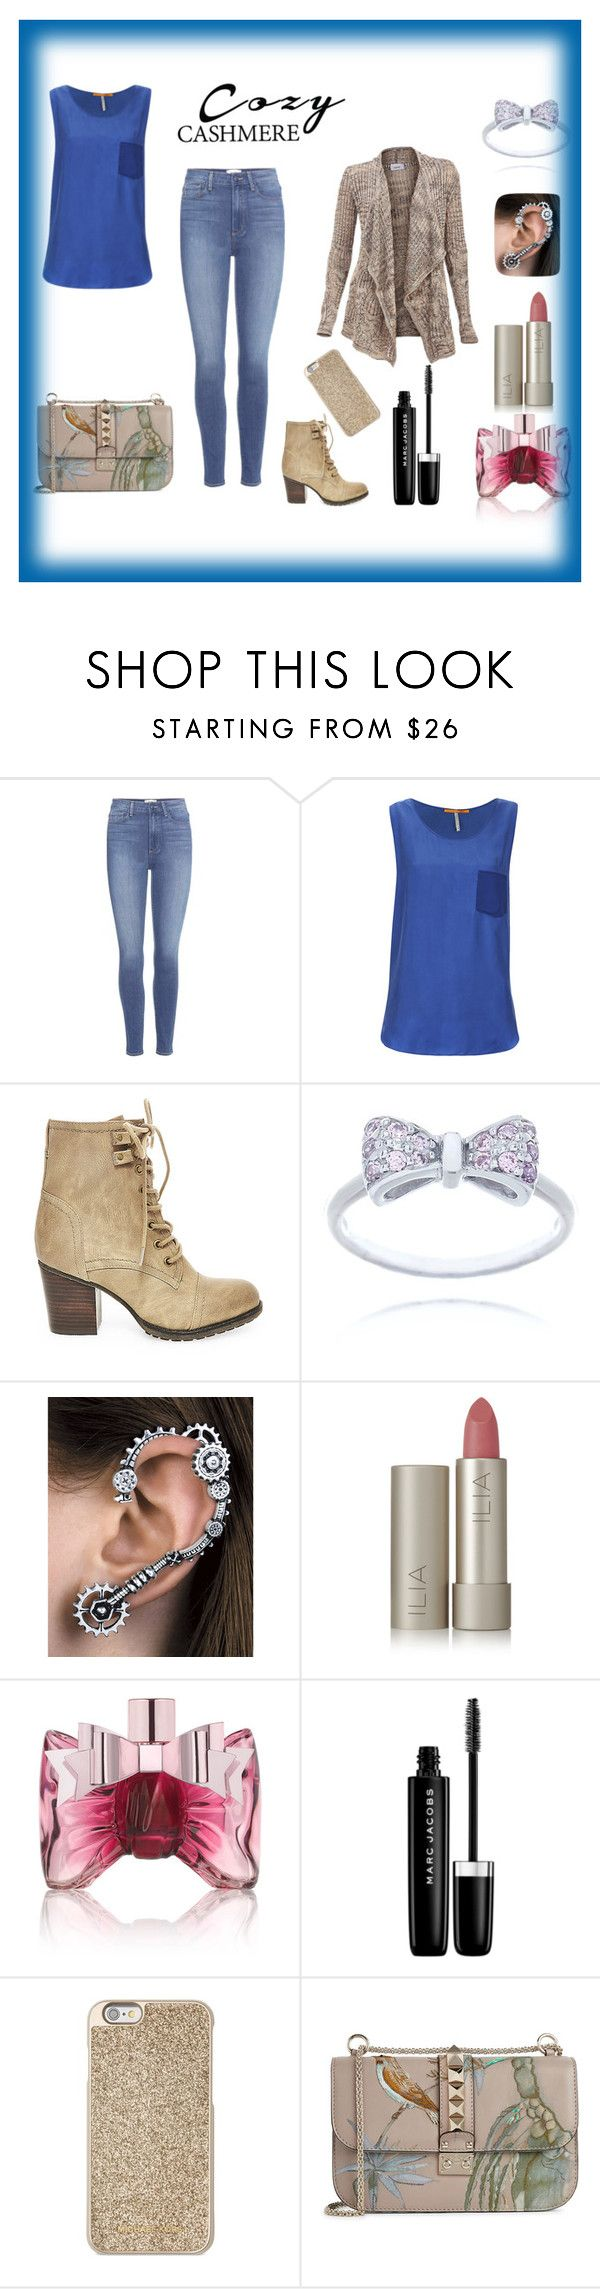 """""""Untitled #6"""" by adela-fashion ❤ liked on Polyvore featuring Paige Denim, BOSS Orange, Steve Madden, Ilia, Viktor & Rolf, Marc Jacobs, Michael Kors and Valentino"""